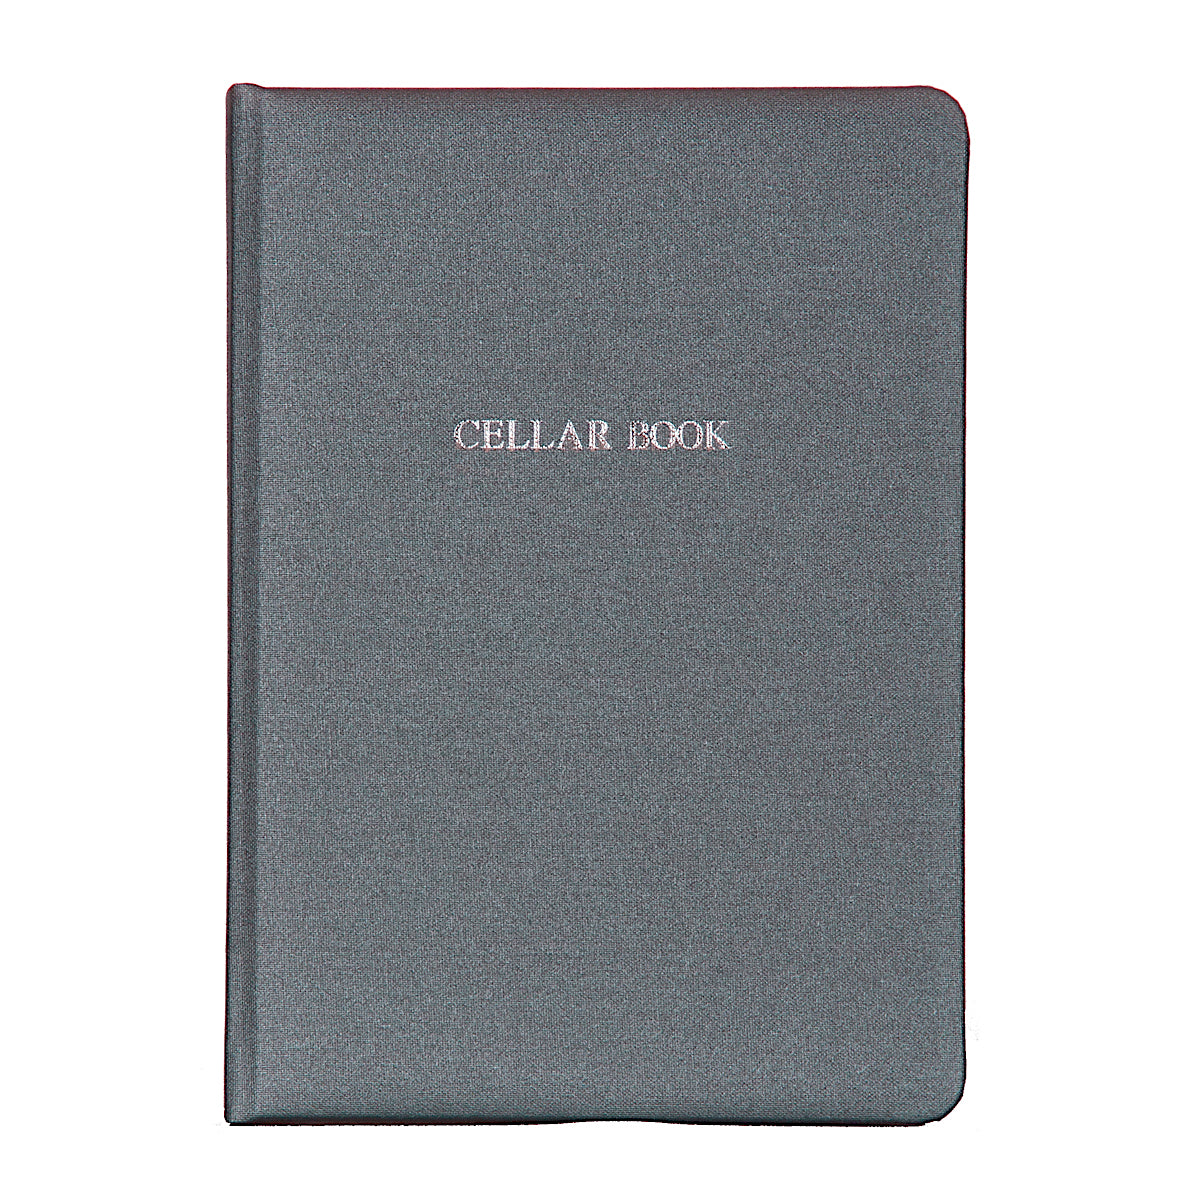 Steel Grey Buckram Cellar Book